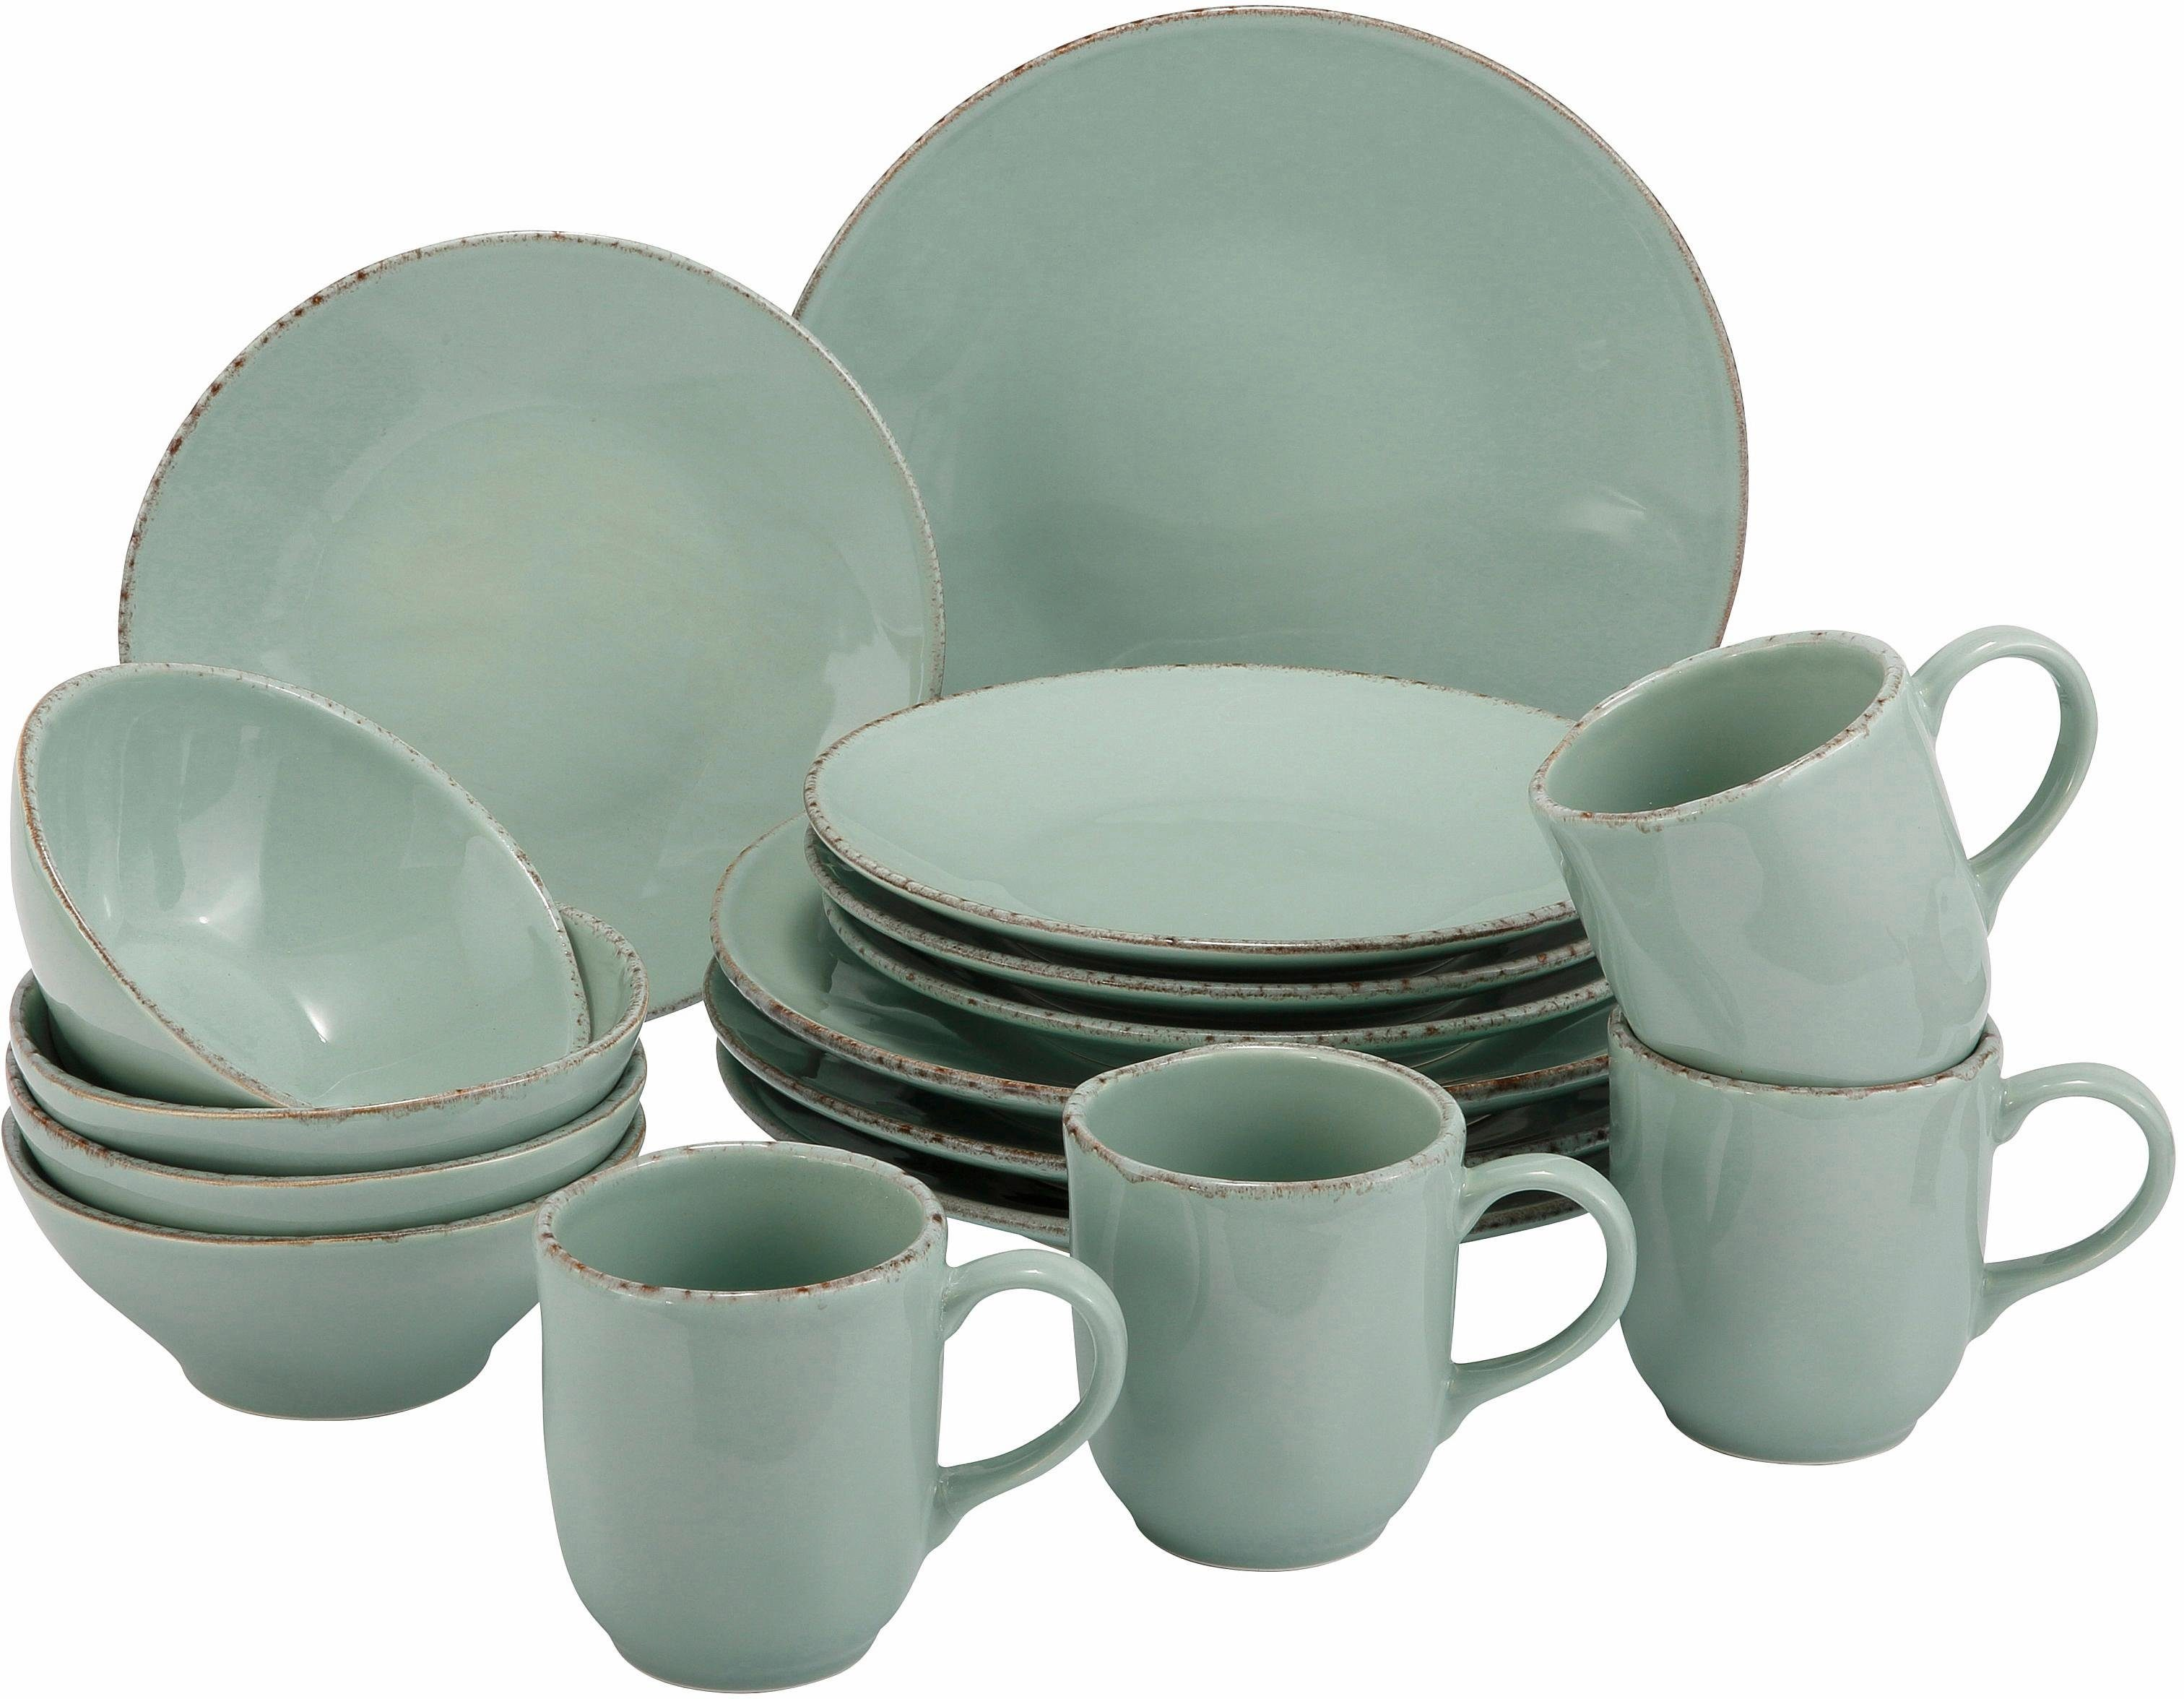 Otto Guido Maria Kretschmer Home Guido Maria Kretschmer Home Andliving Combi Servies 39naturals